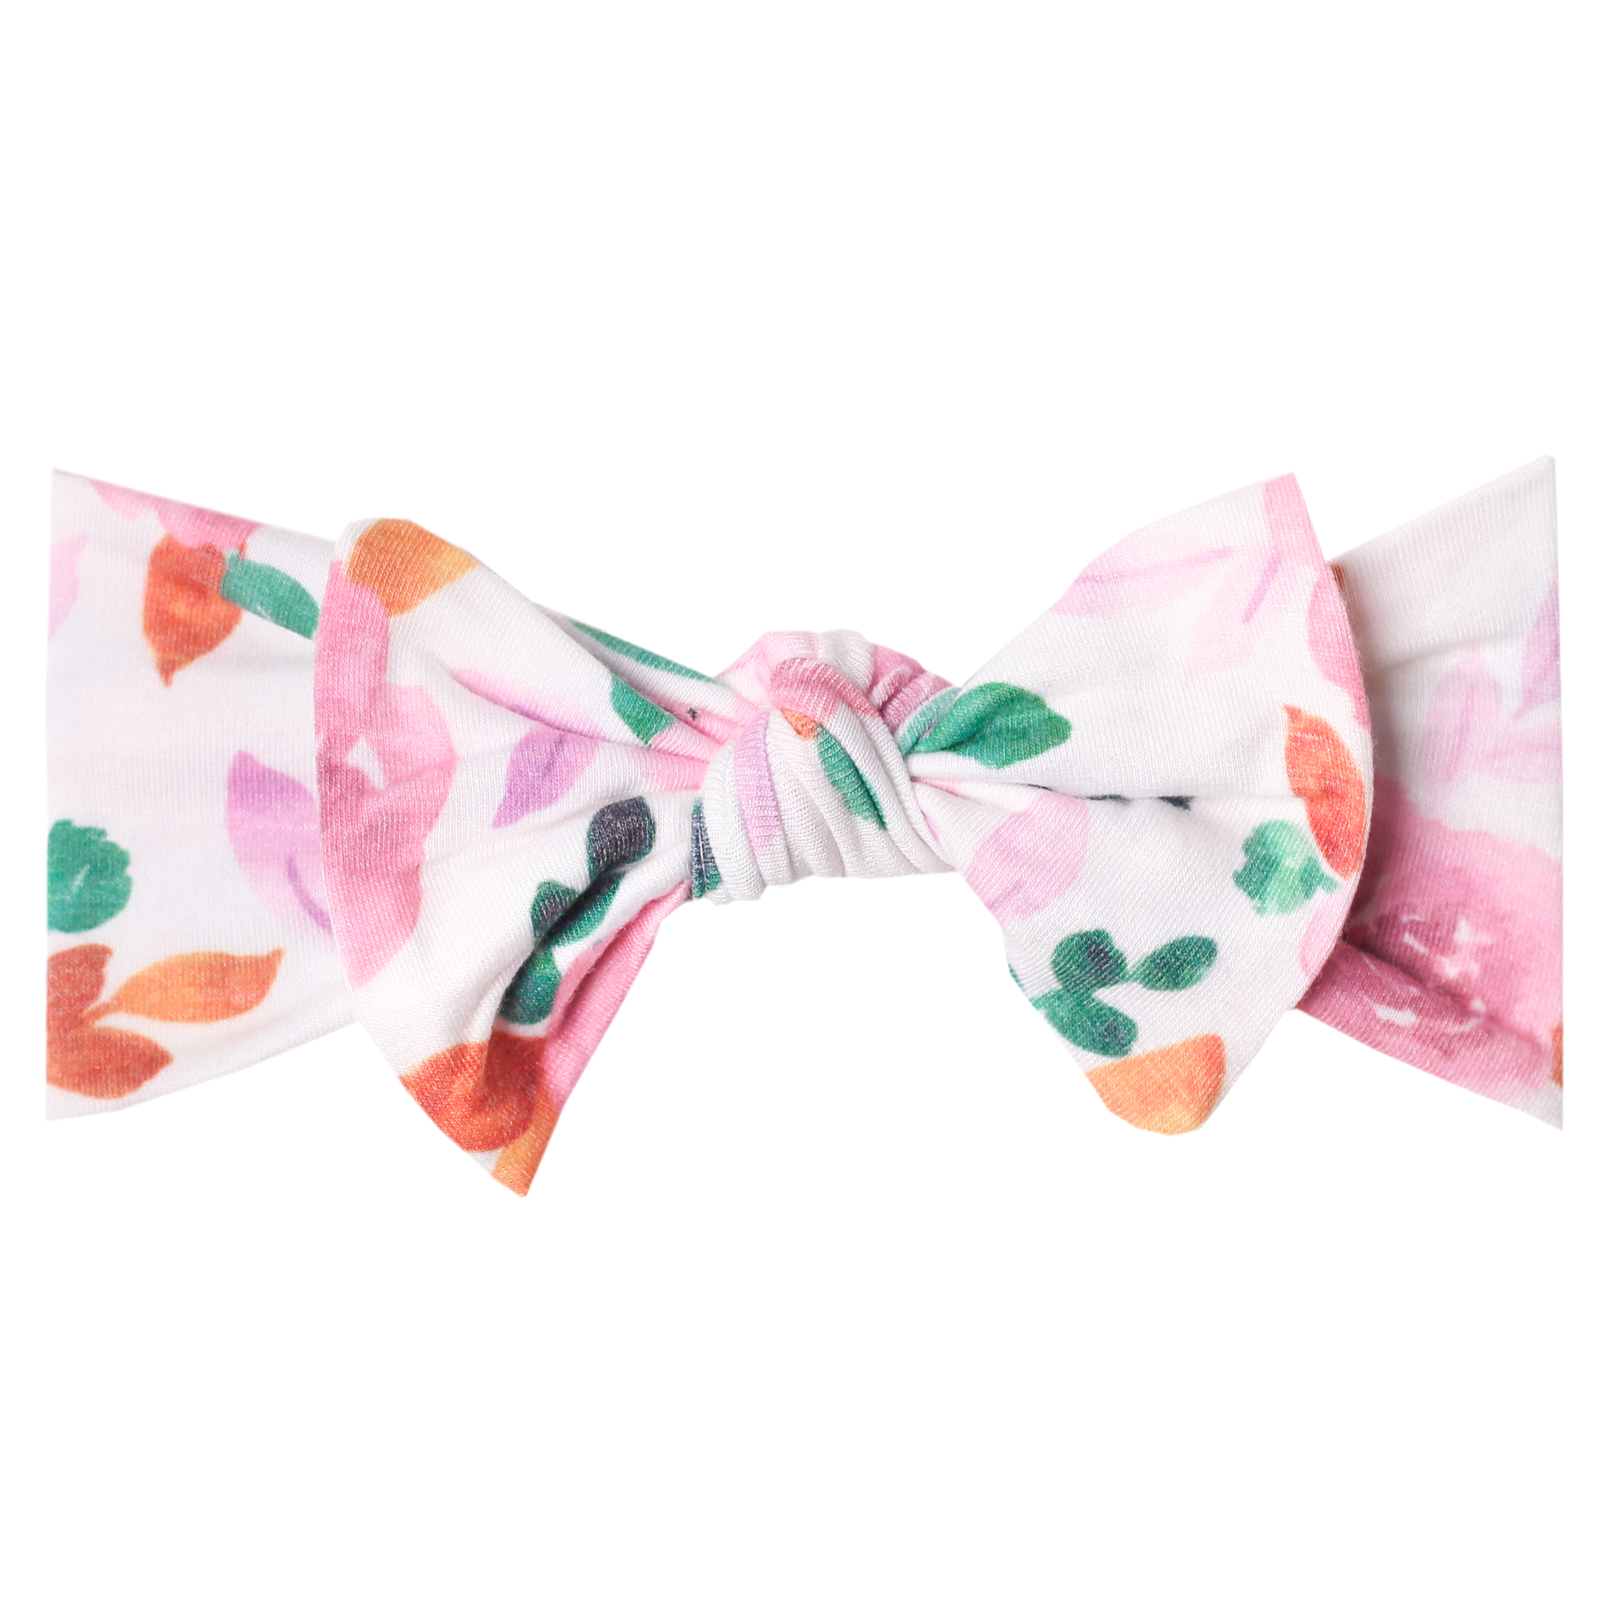 Knit Headband Bow | Siena